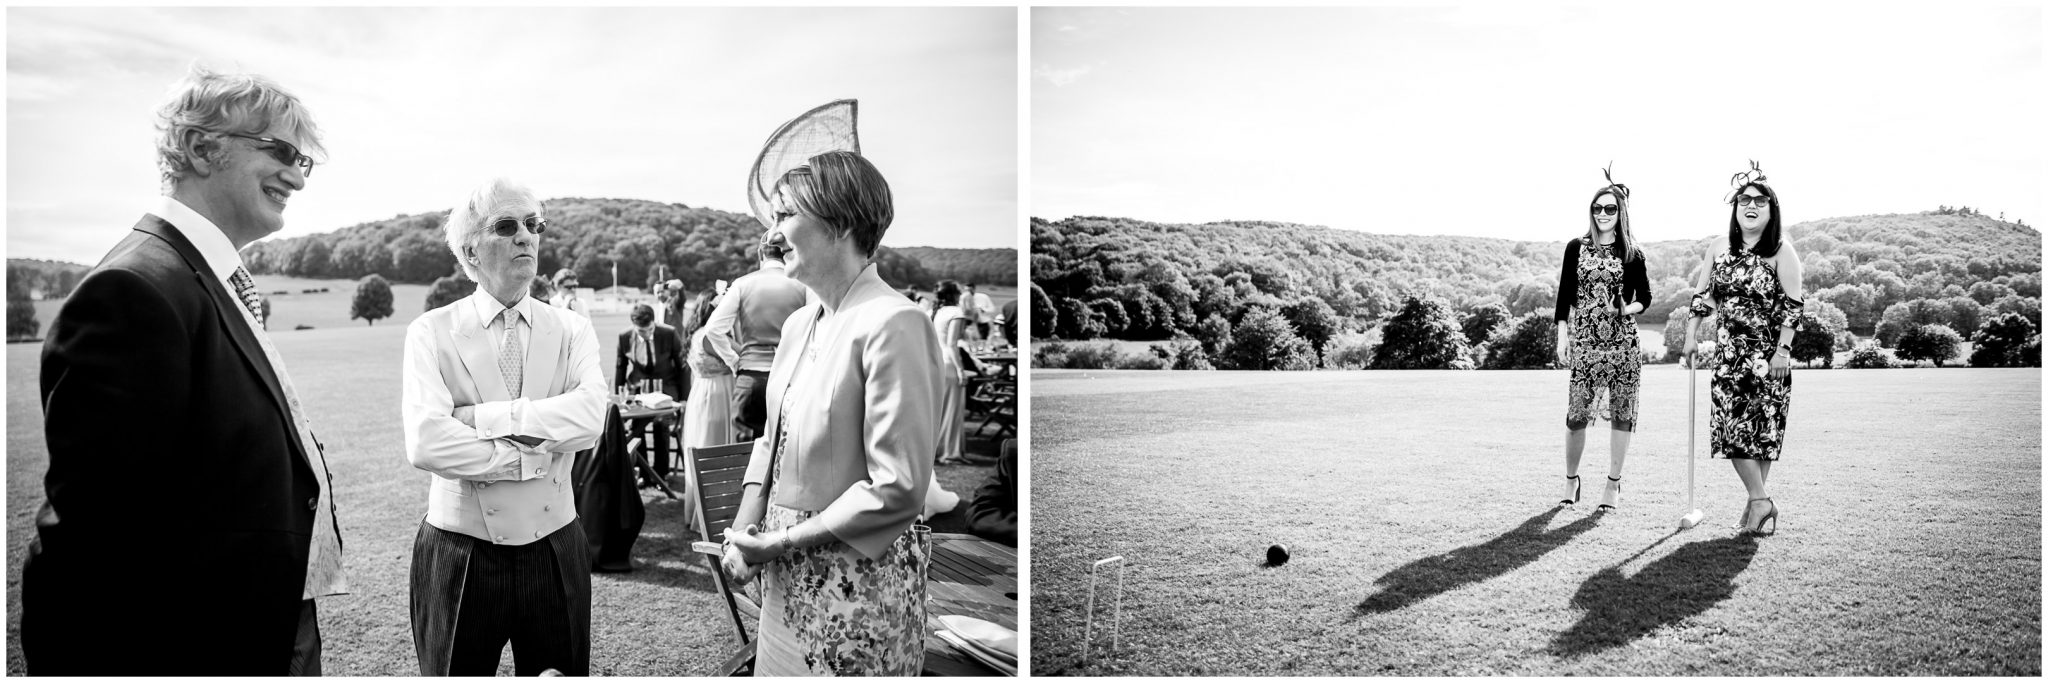 Black and white photos of guests on the lawn at Milton Abbey School wedding venue